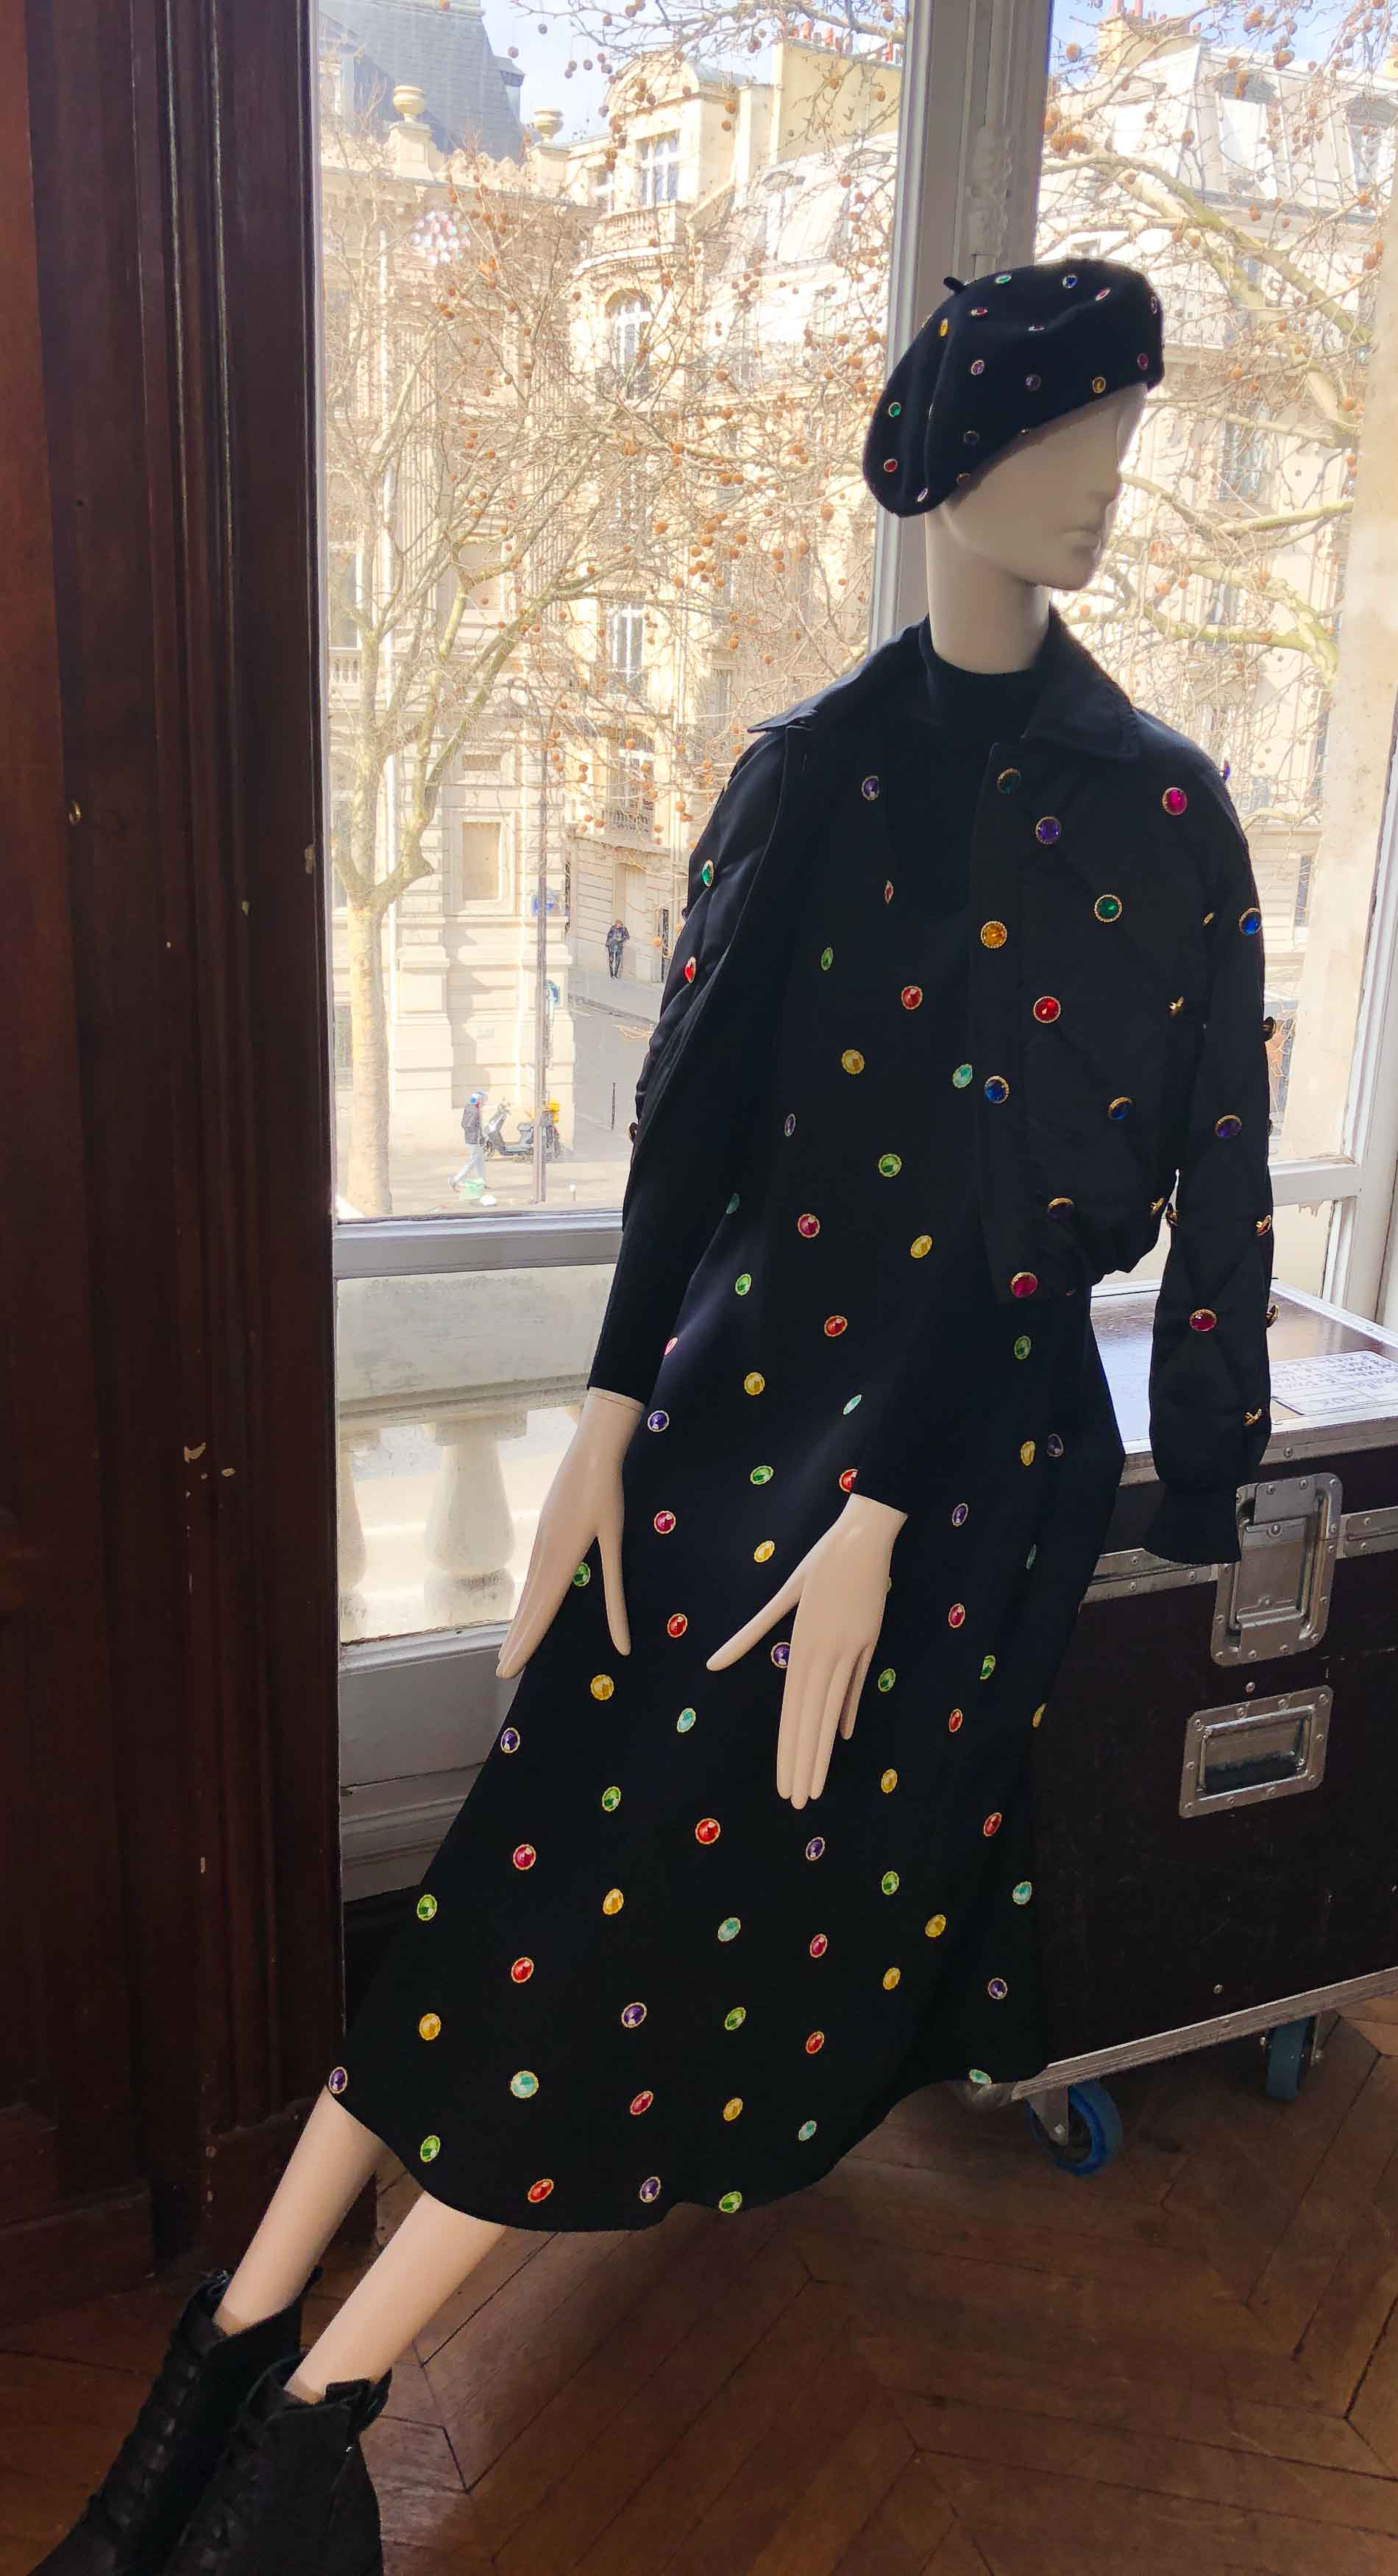 Fashion Blogger Veronika Lipar of Brunette from Wall Street sharing photo of Escada autumn winter 2018/19 ready to wear collection from Paris fashion week showroom